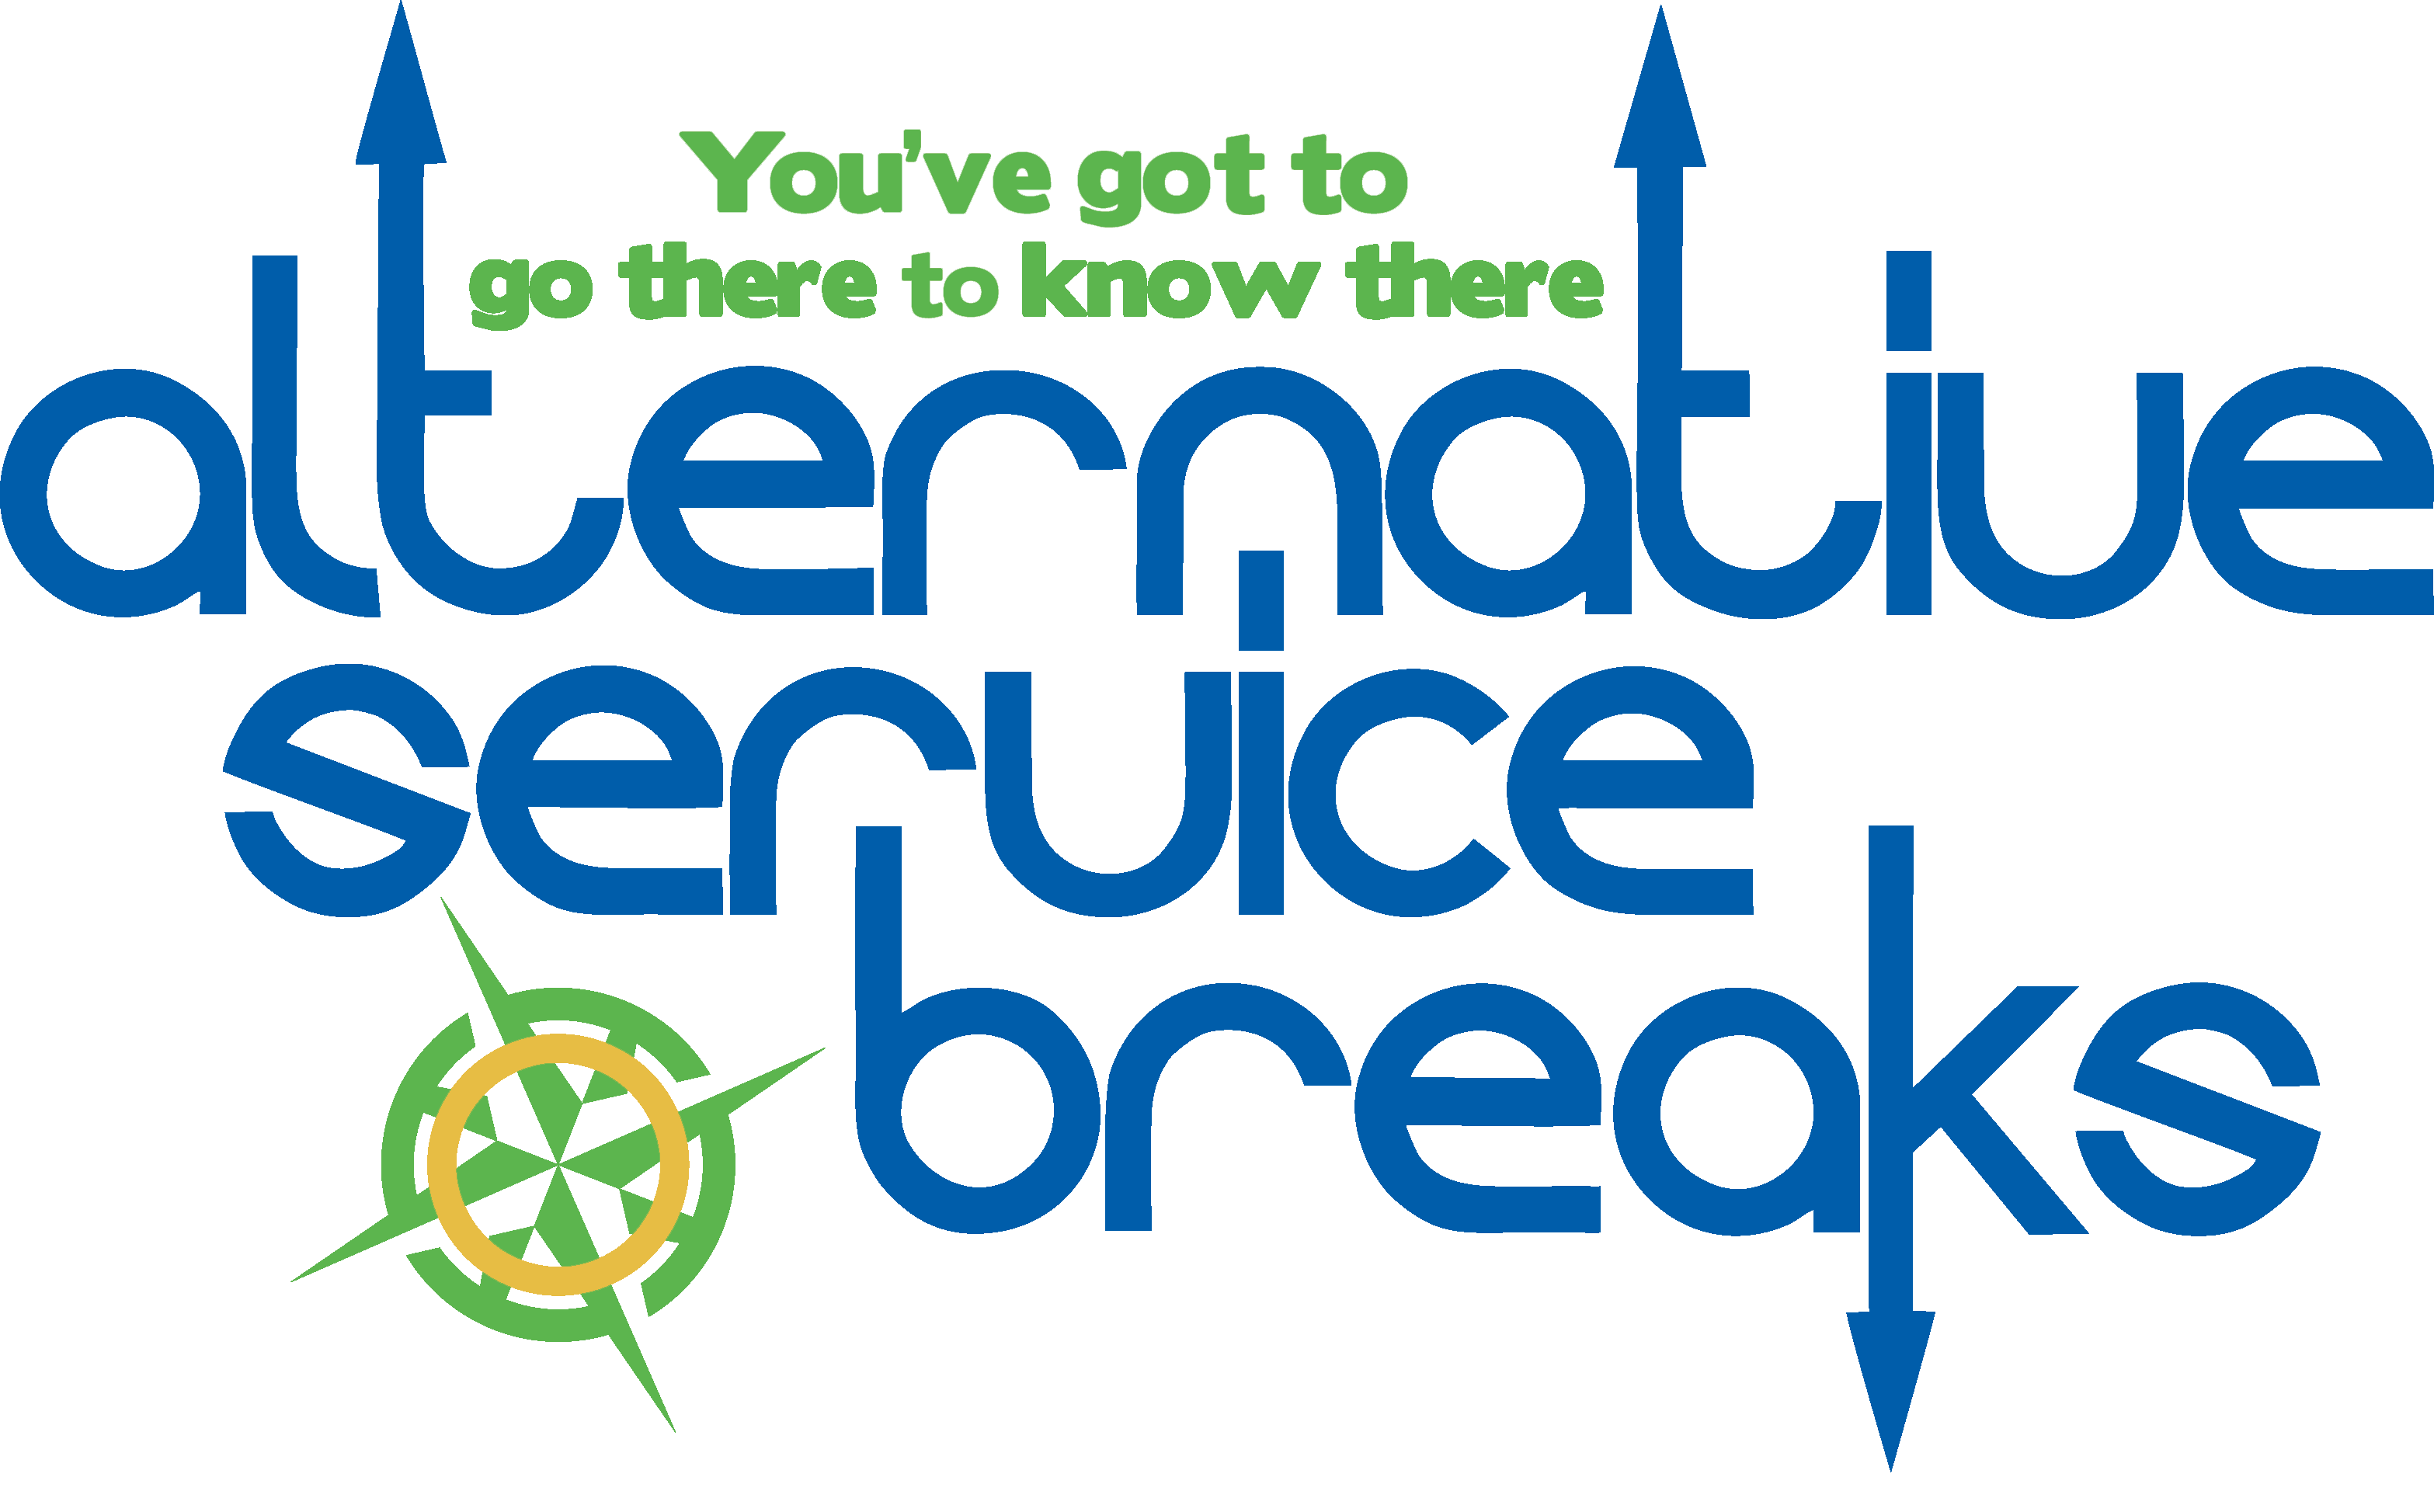 University of Kentucky Alternative Service Breaks